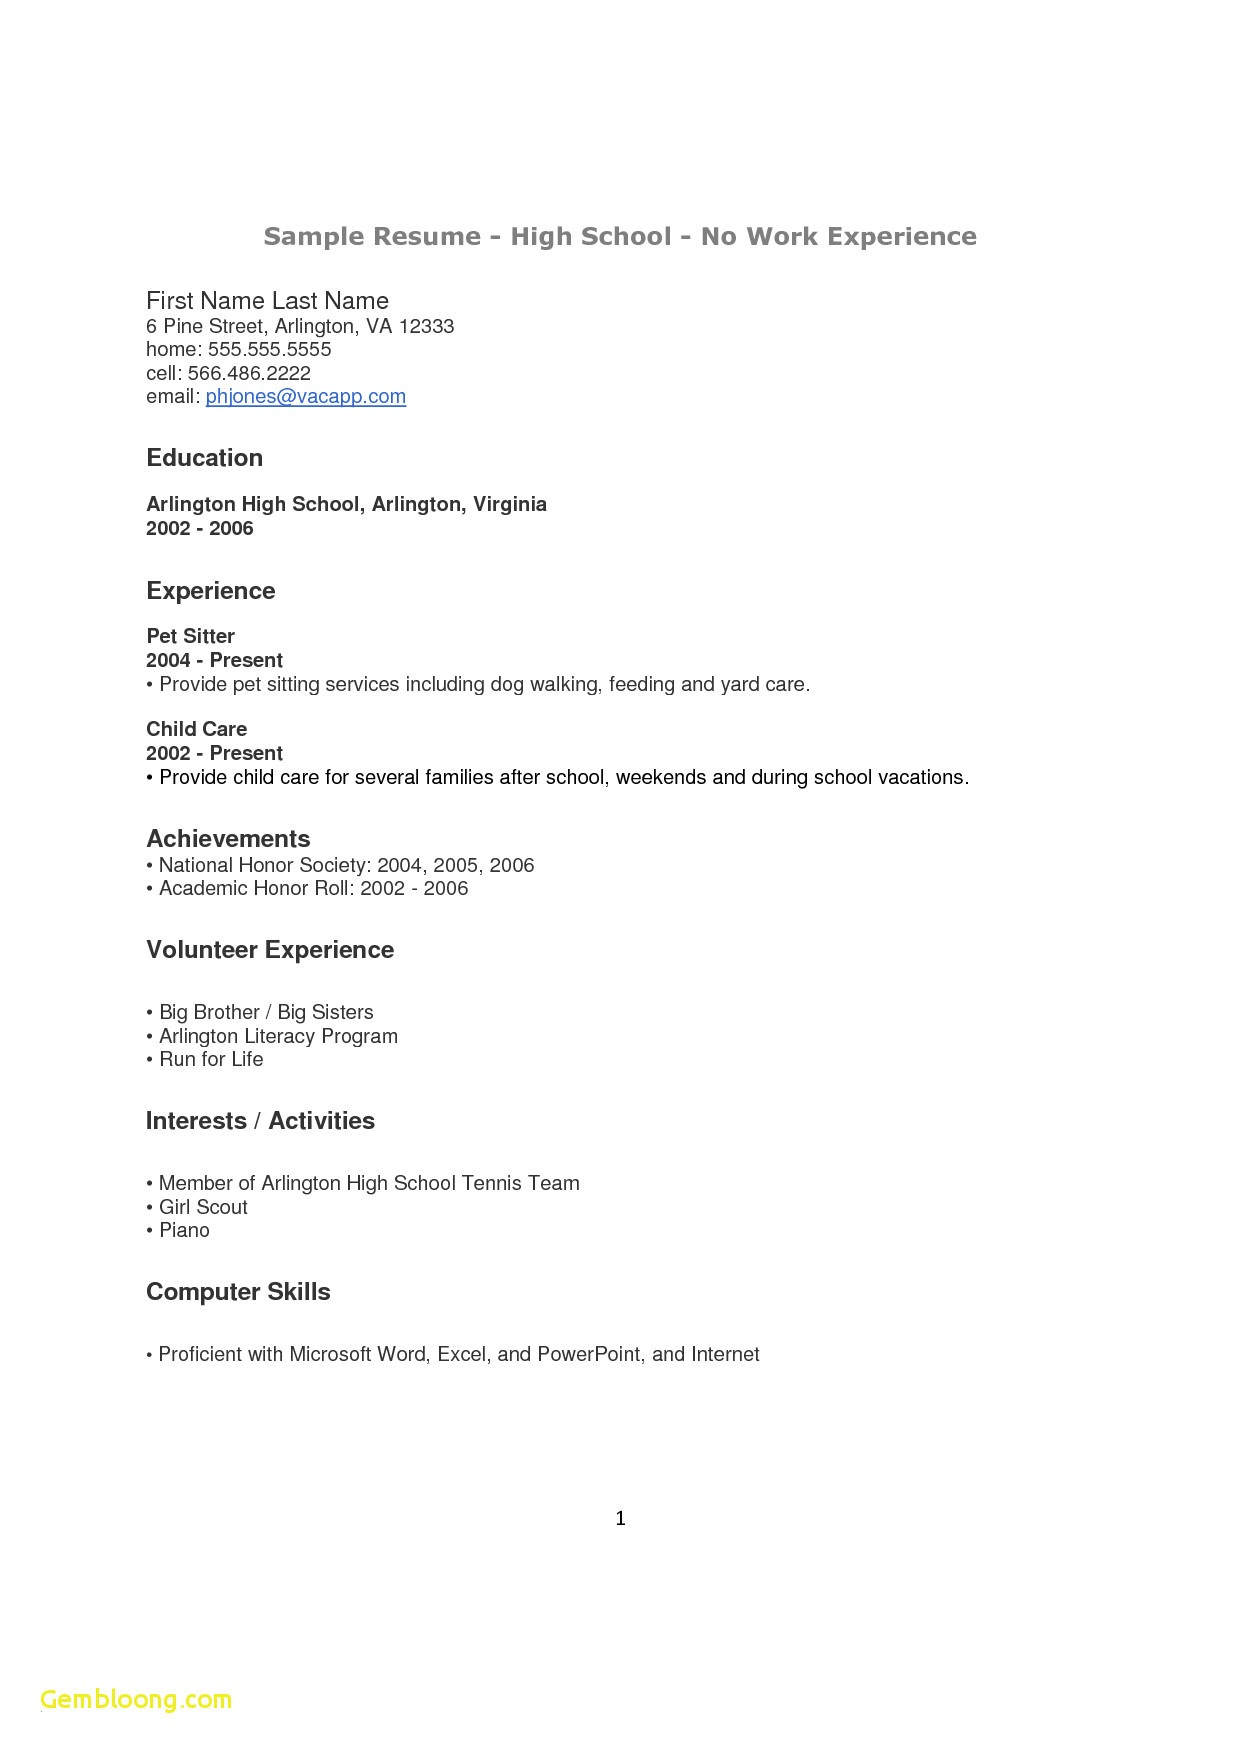 Professional Summary No Experience - Resume for High School Students with No Experience Template Best